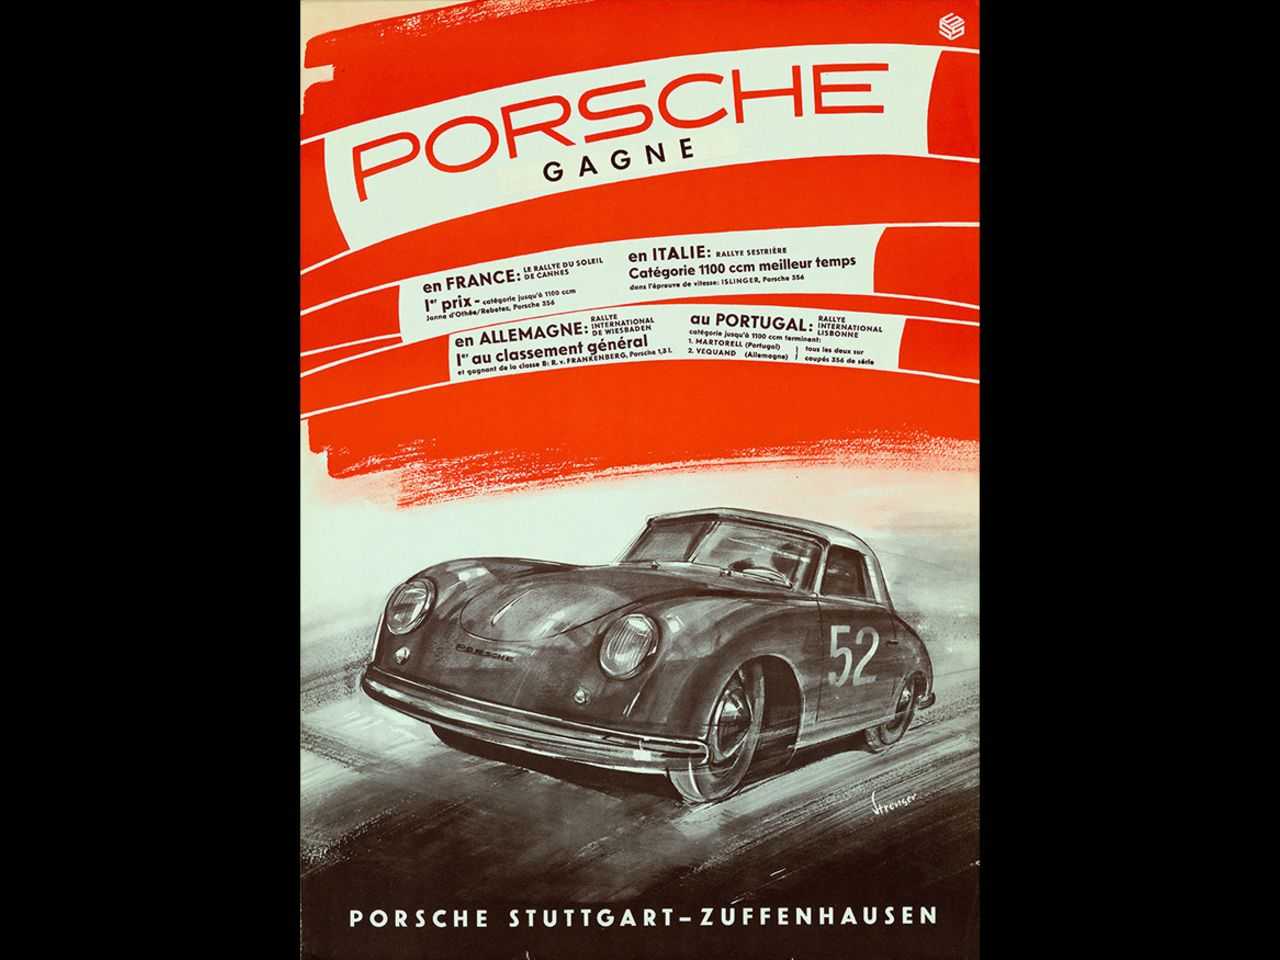 "... racing posters. Entitled ""Porsche wins,"" the oldest poster in the company archives is from 1951. It commemorates rally victories by the Porsche 356 in France, Italy, Germany, and Portugal."